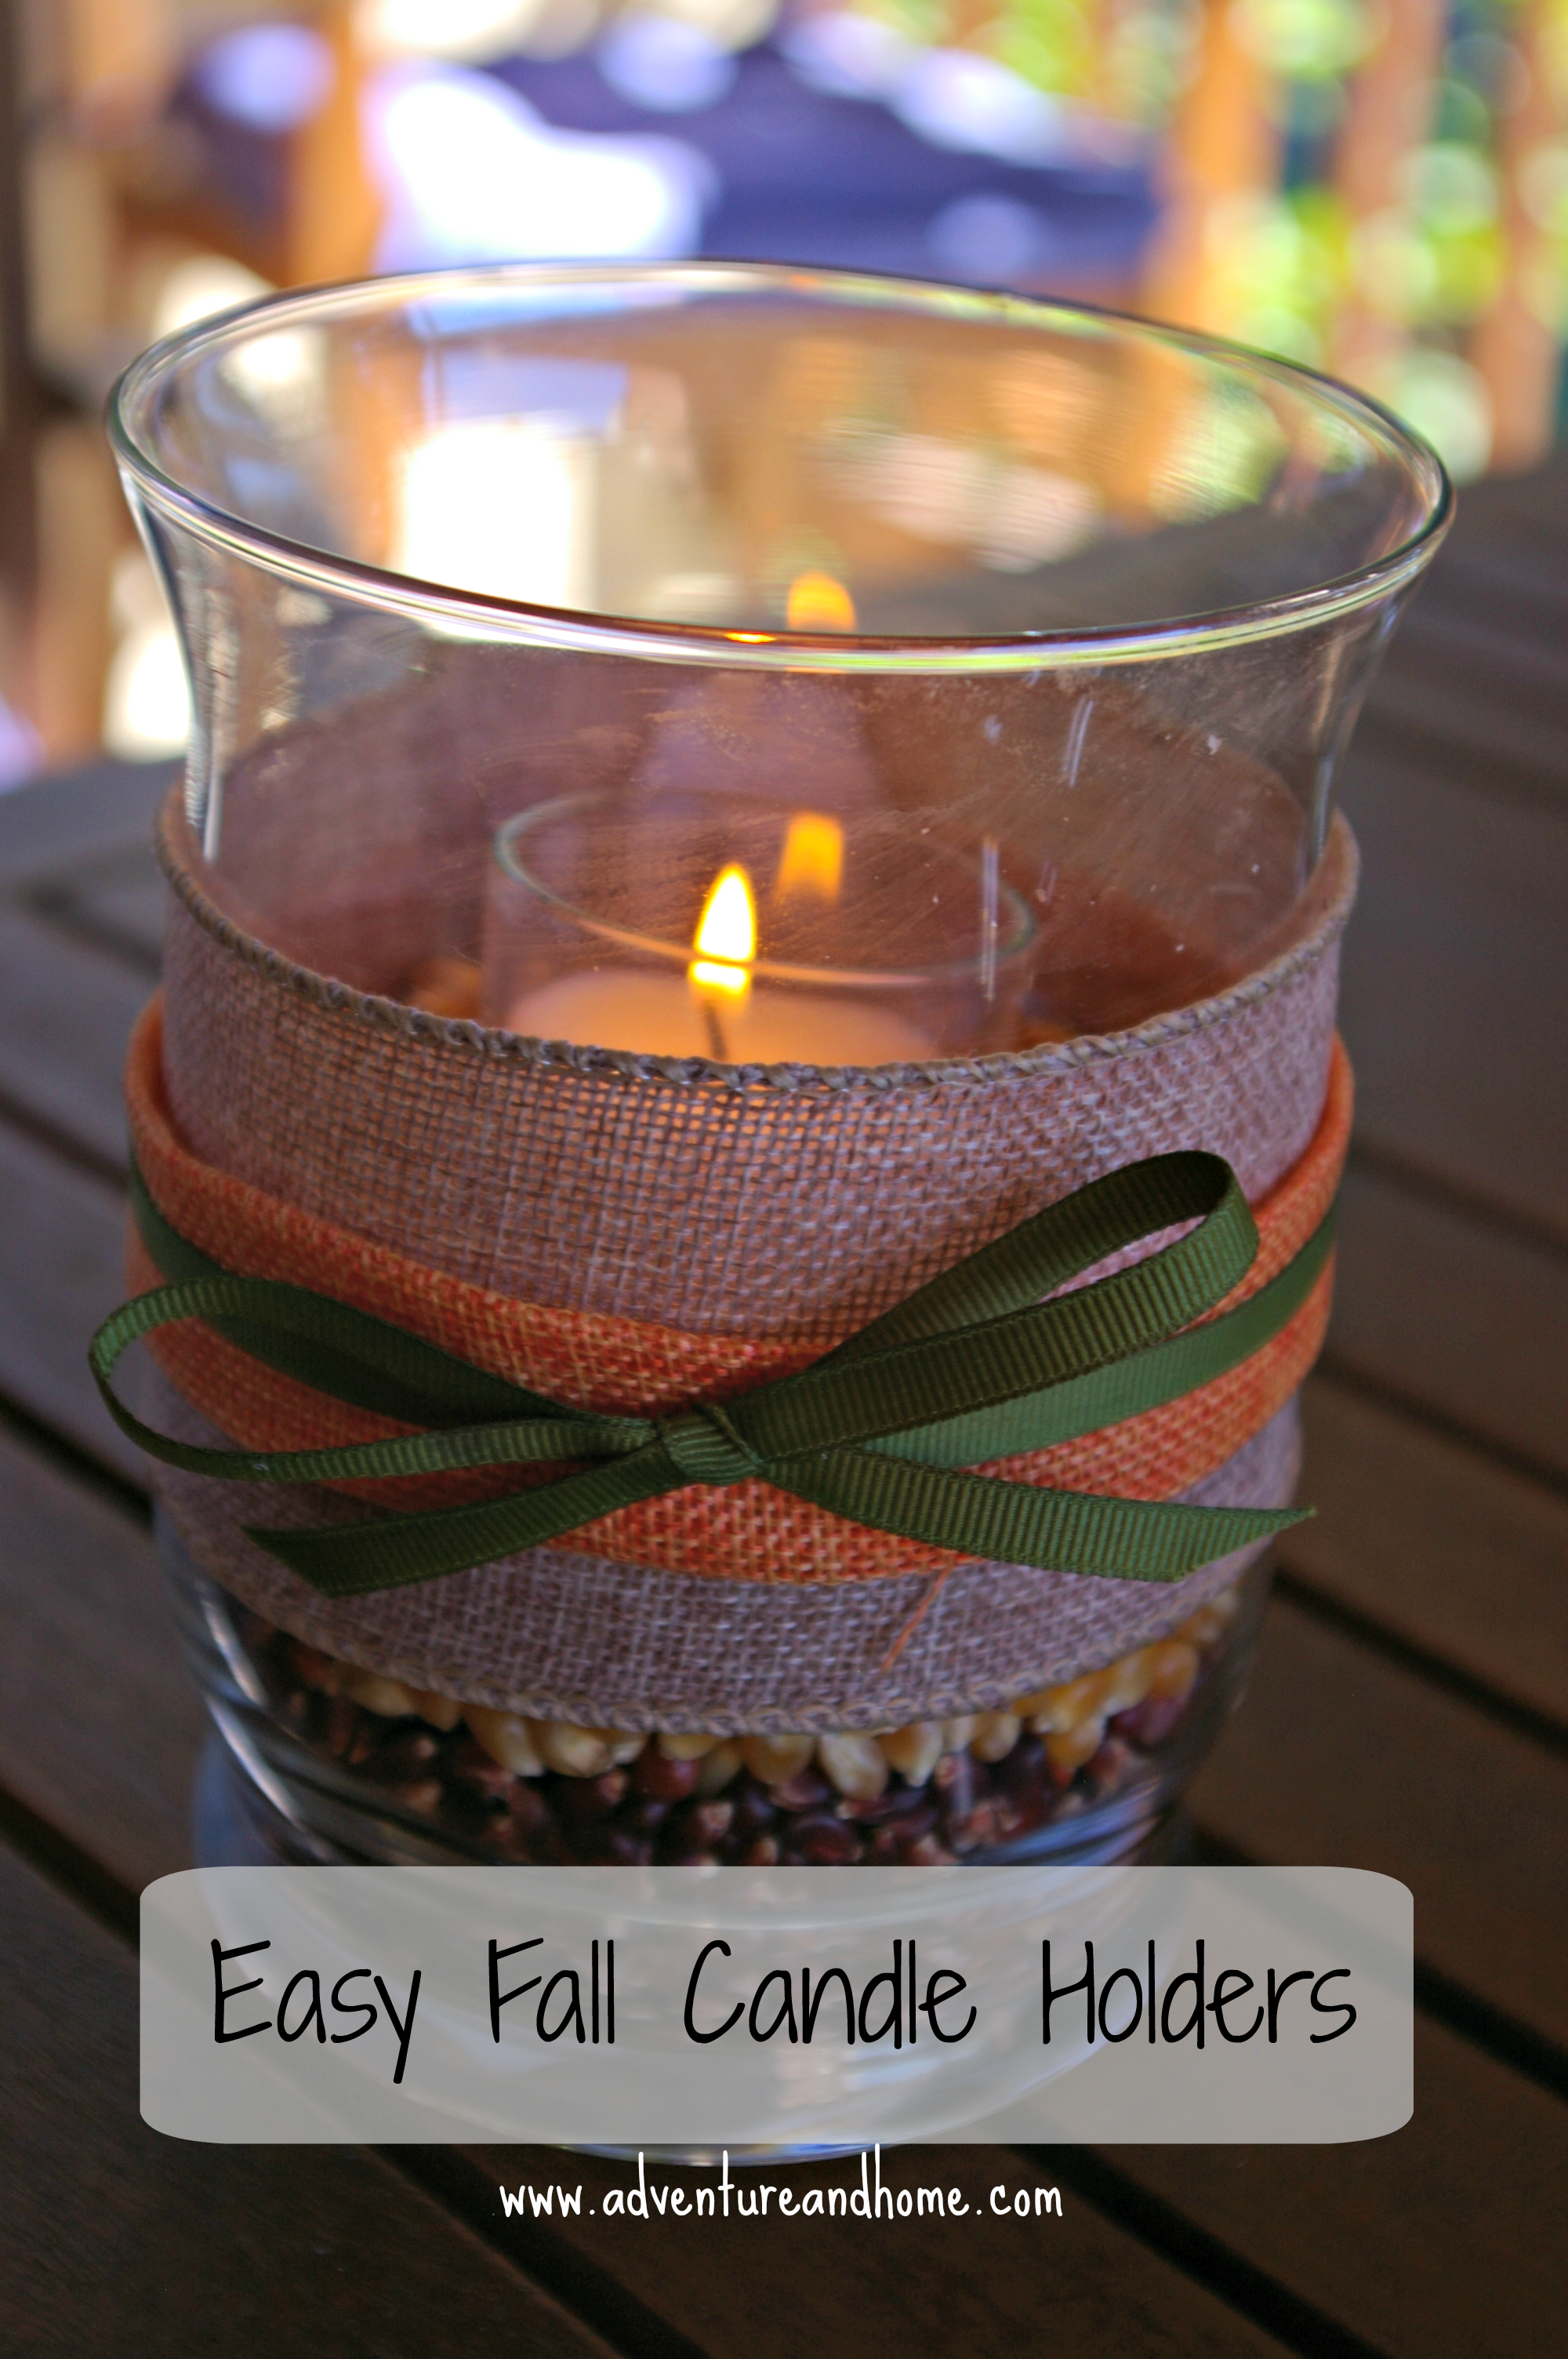 Get Your DIY On: Easy Fall Candle Holders